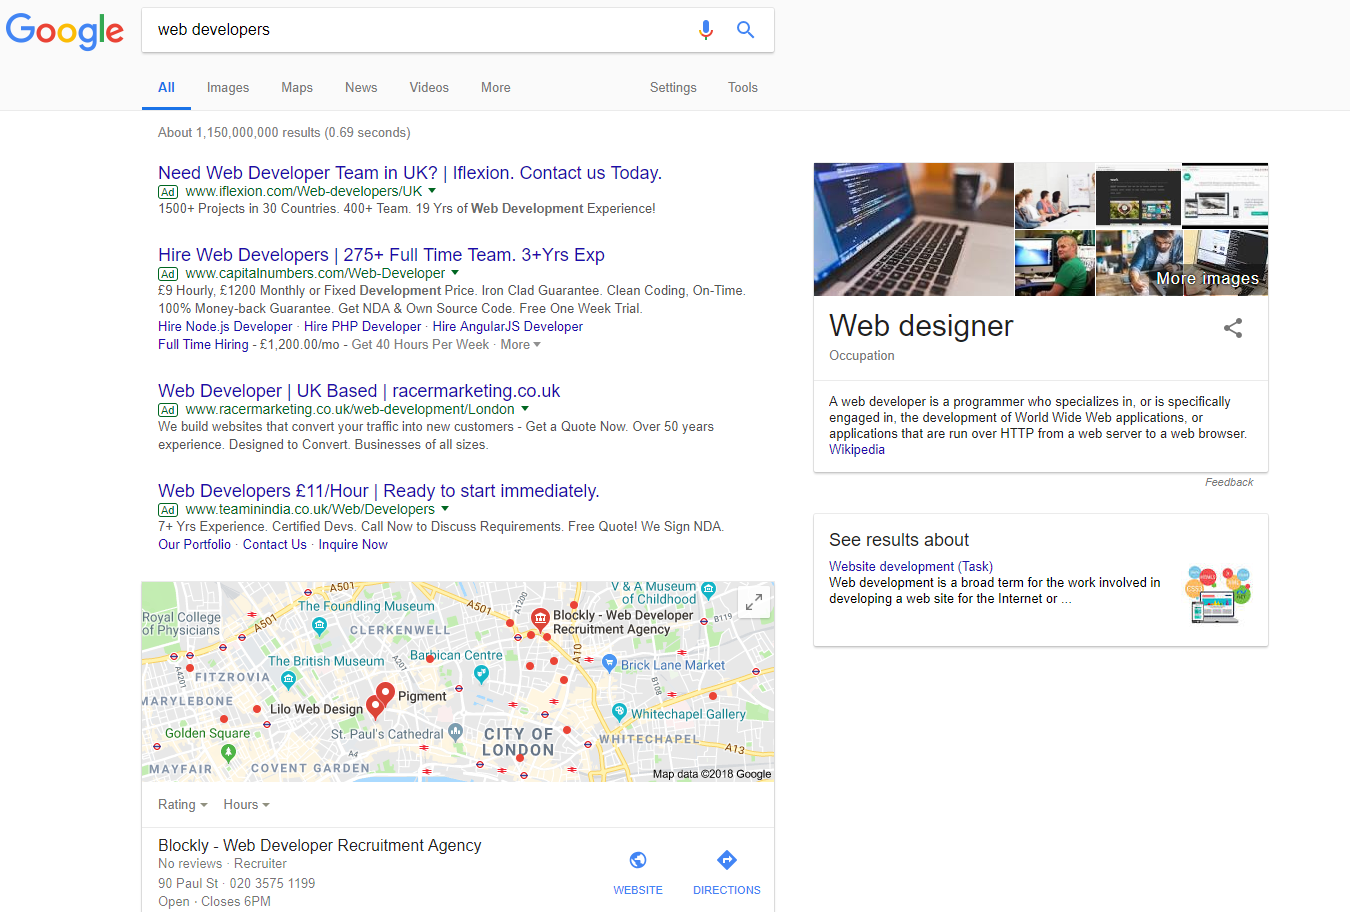 Search results for 'web developers'